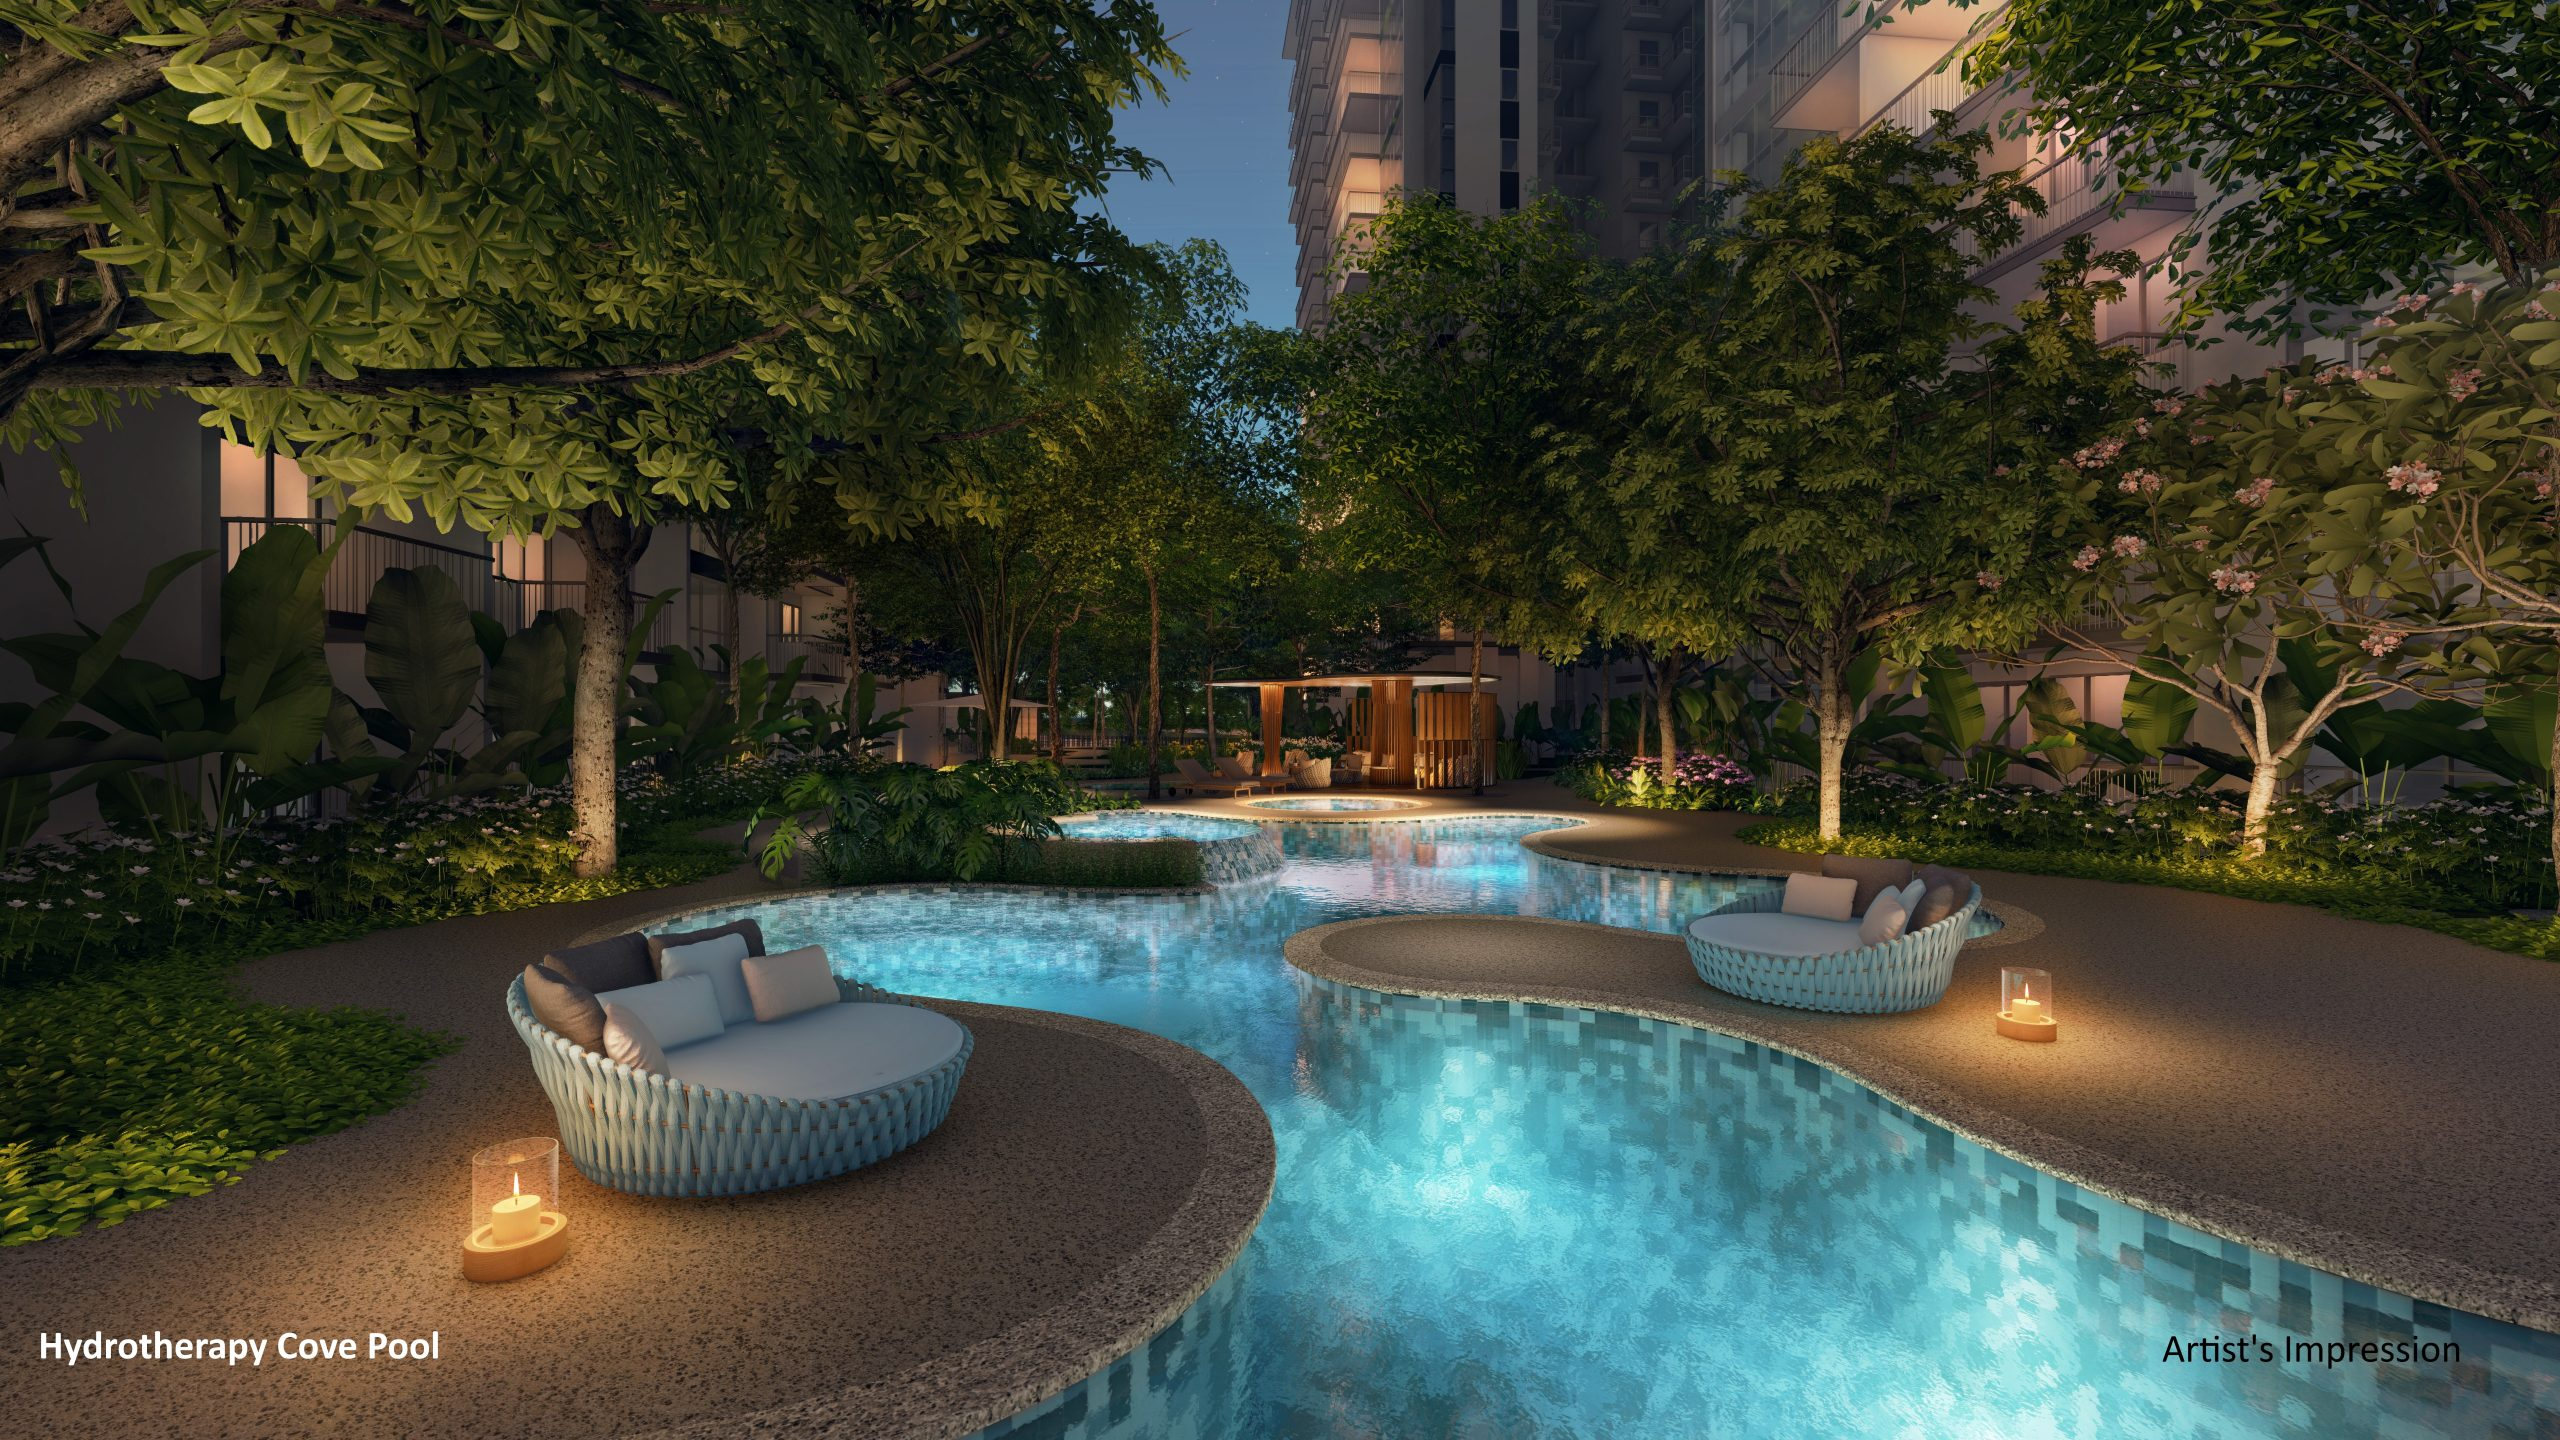 Therapy Cove Pool